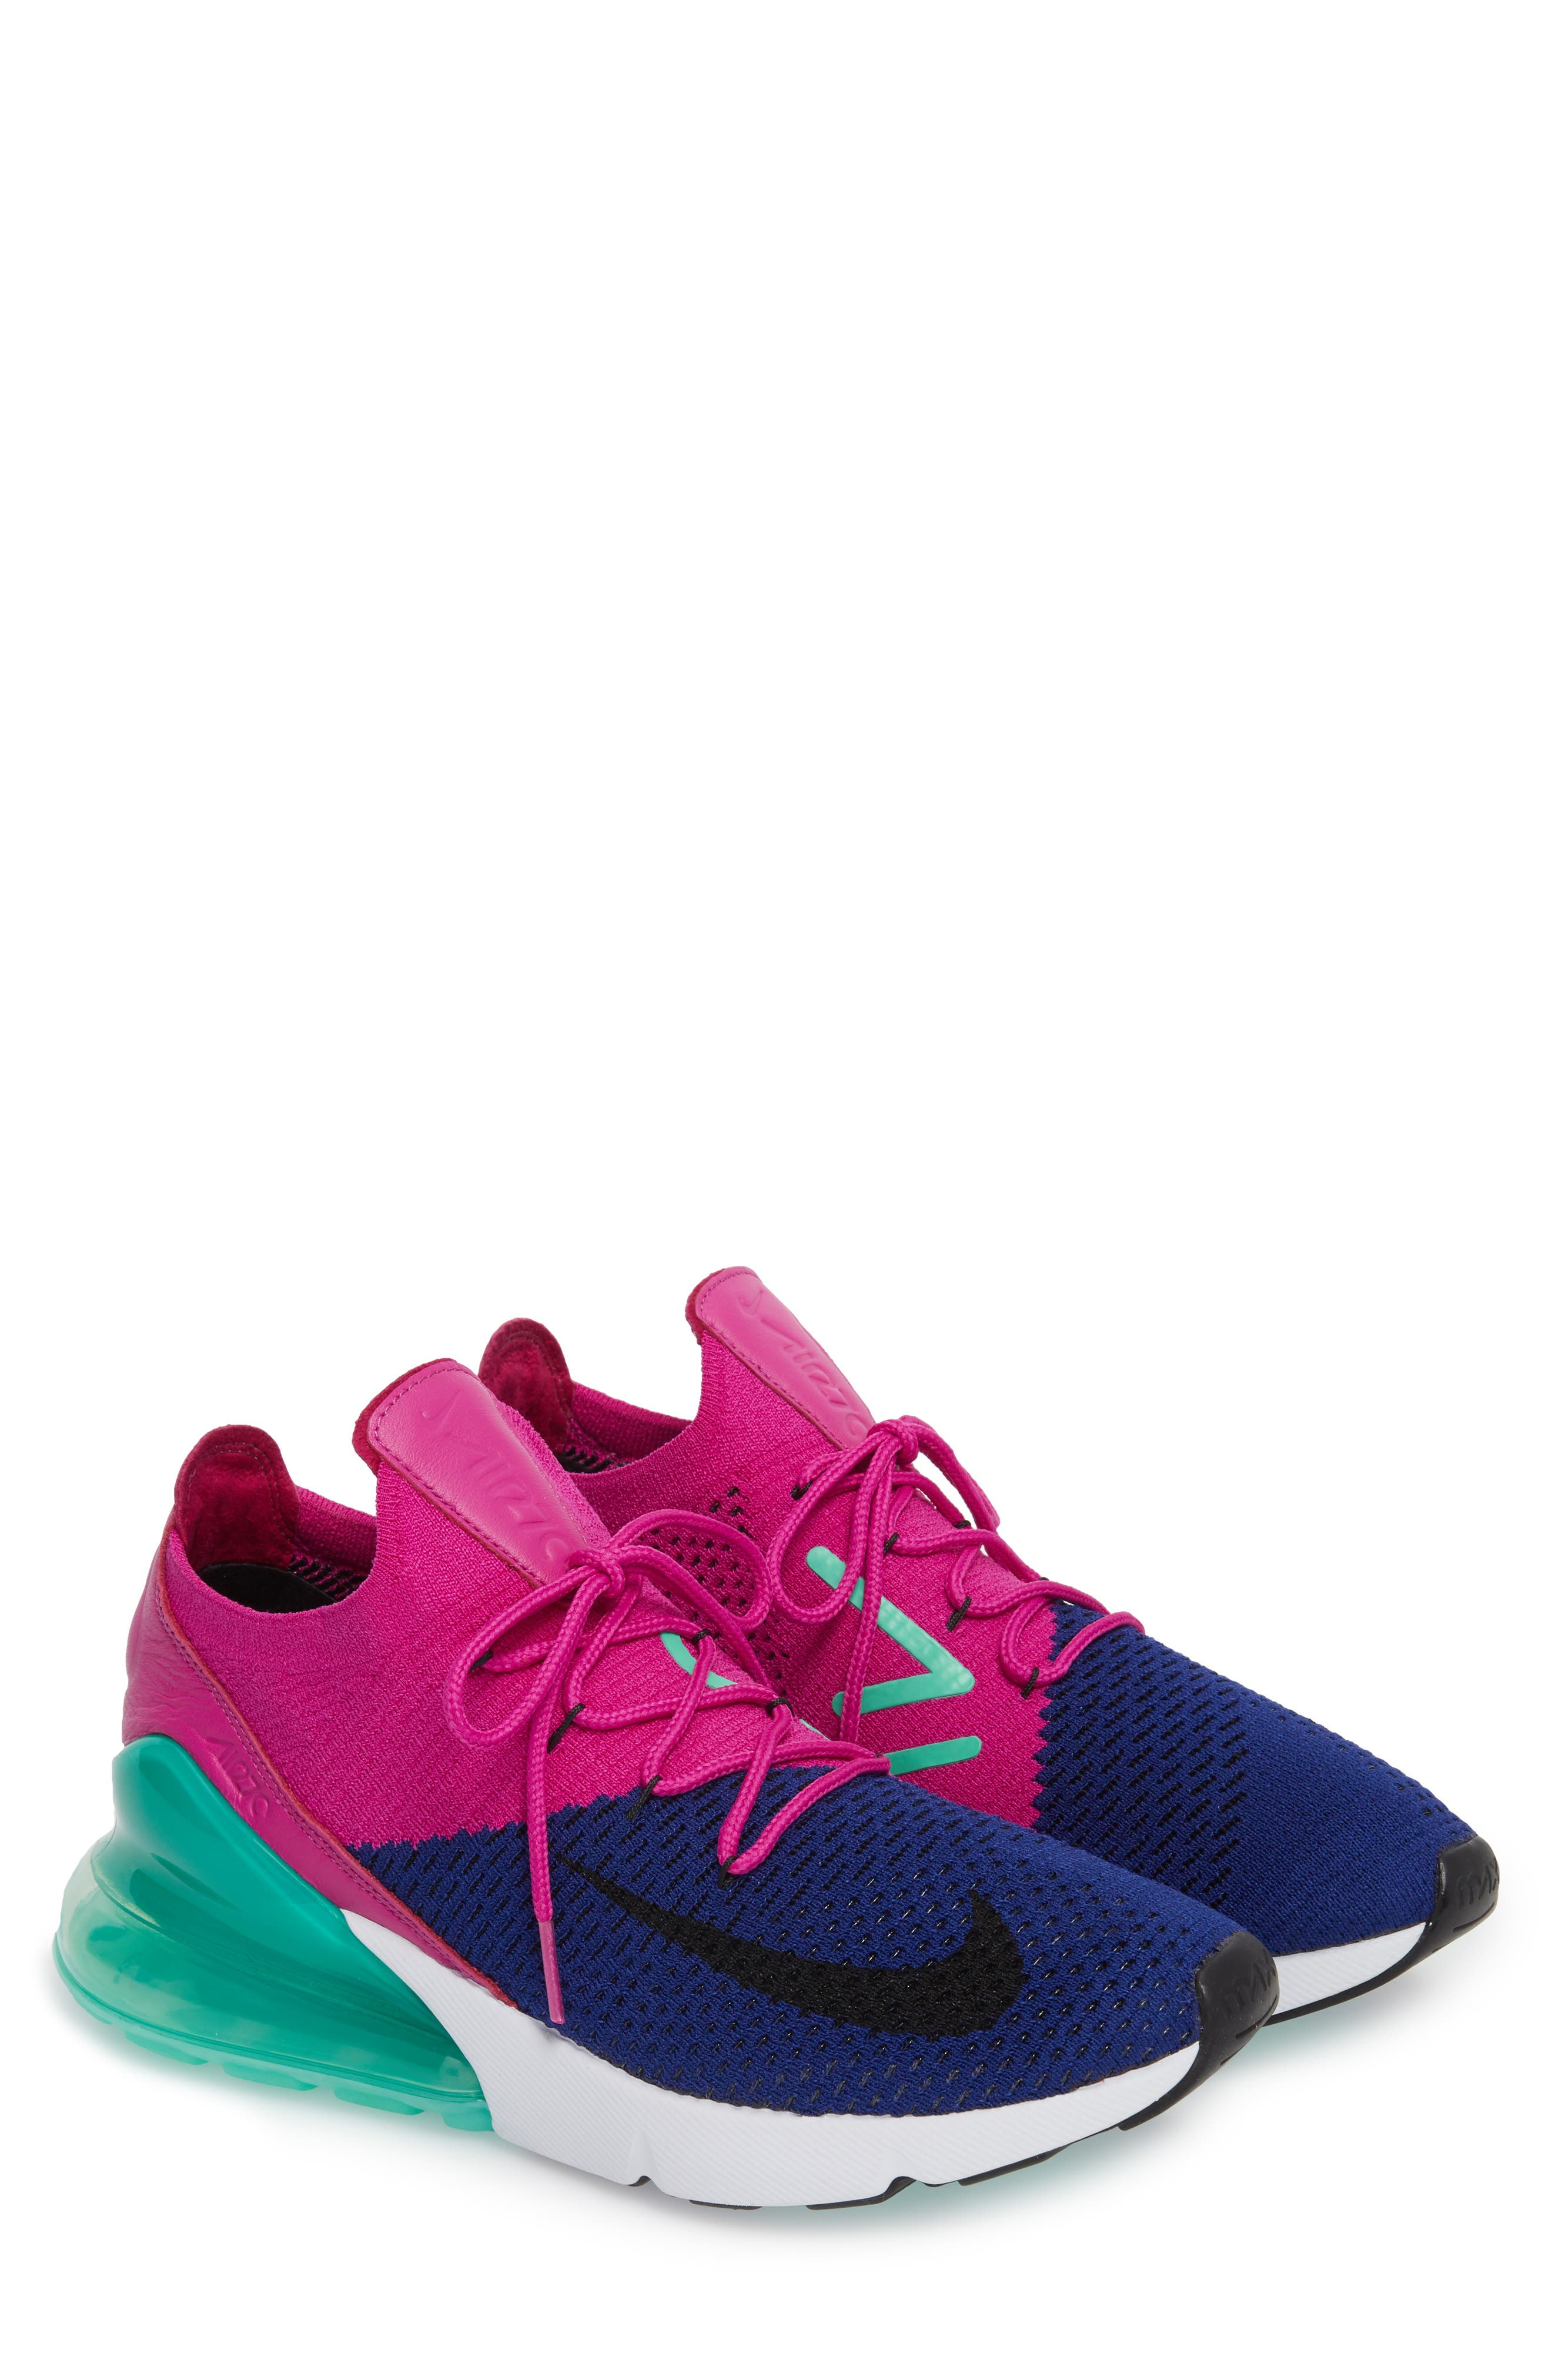 Air Max 270 Flyknit Sneaker,                             Alternate thumbnail 12, color,